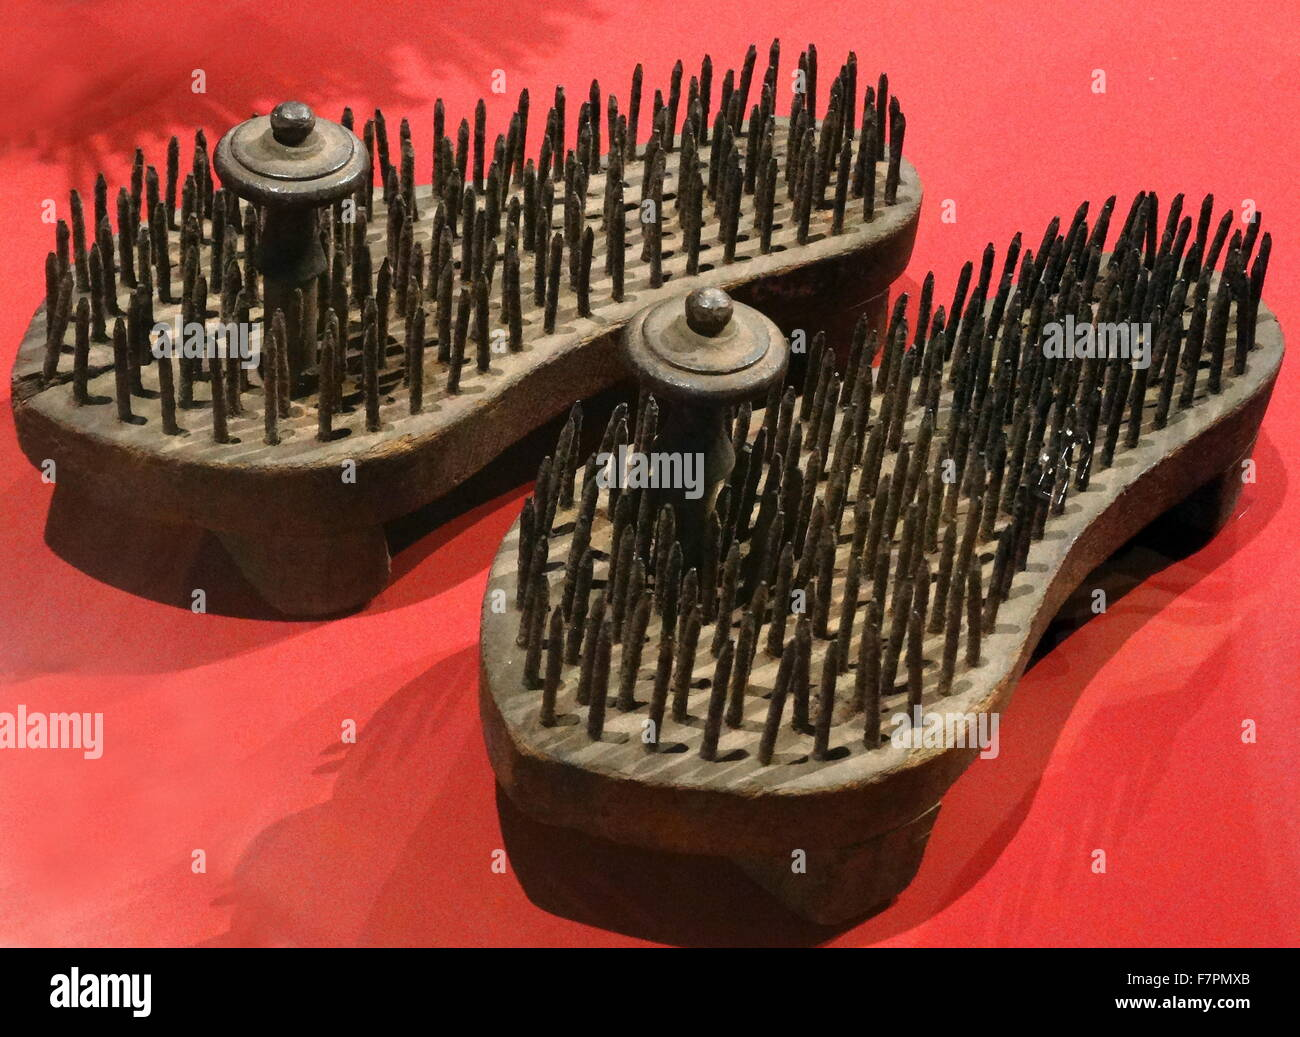 2a27dfda05258 Bed Of Nails Stock Photos   Bed Of Nails Stock Images - Alamy